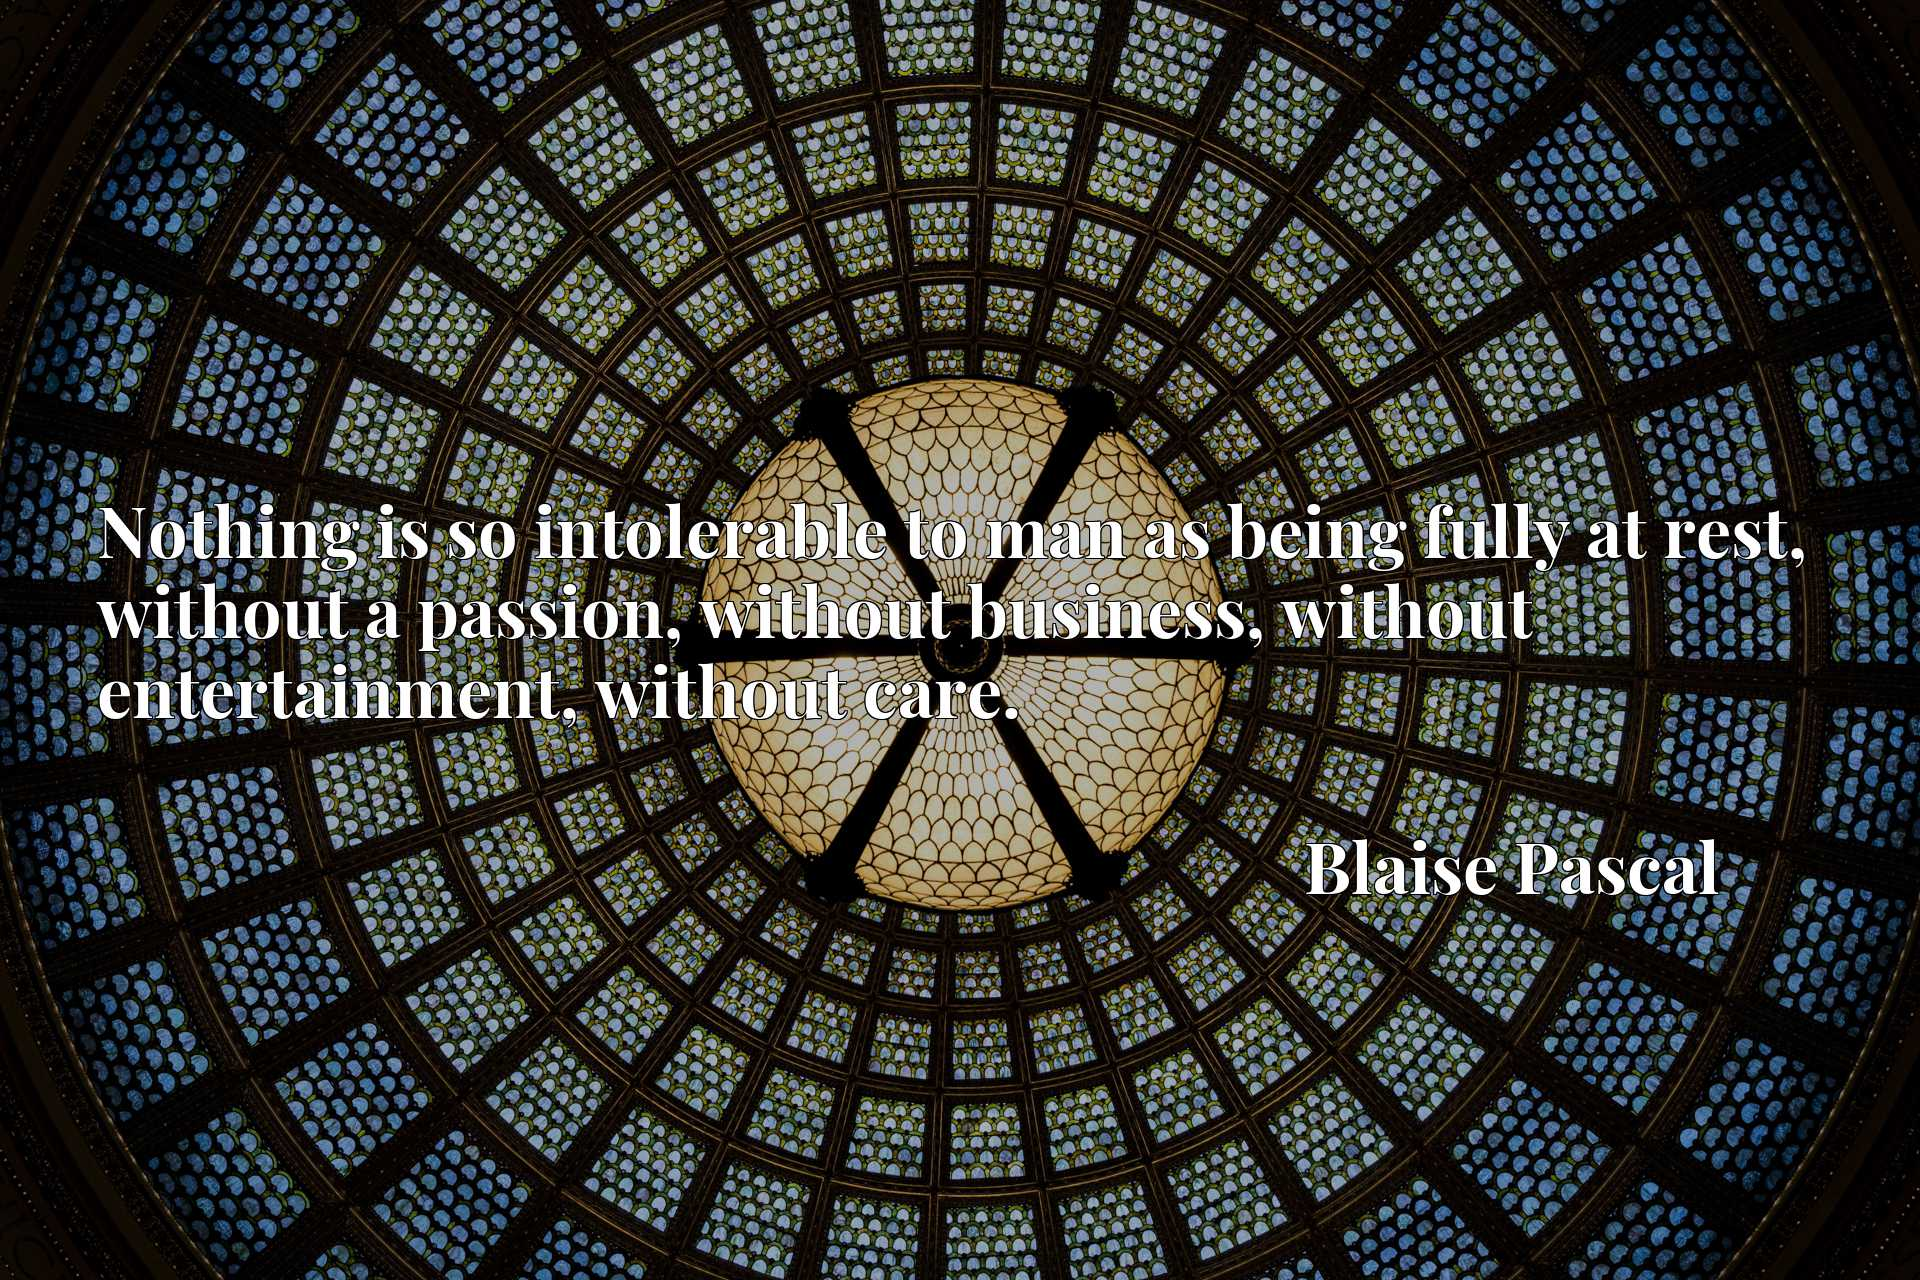 Nothing is so intolerable to man as being fully at rest, without a passion, without business, without entertainment, without care.